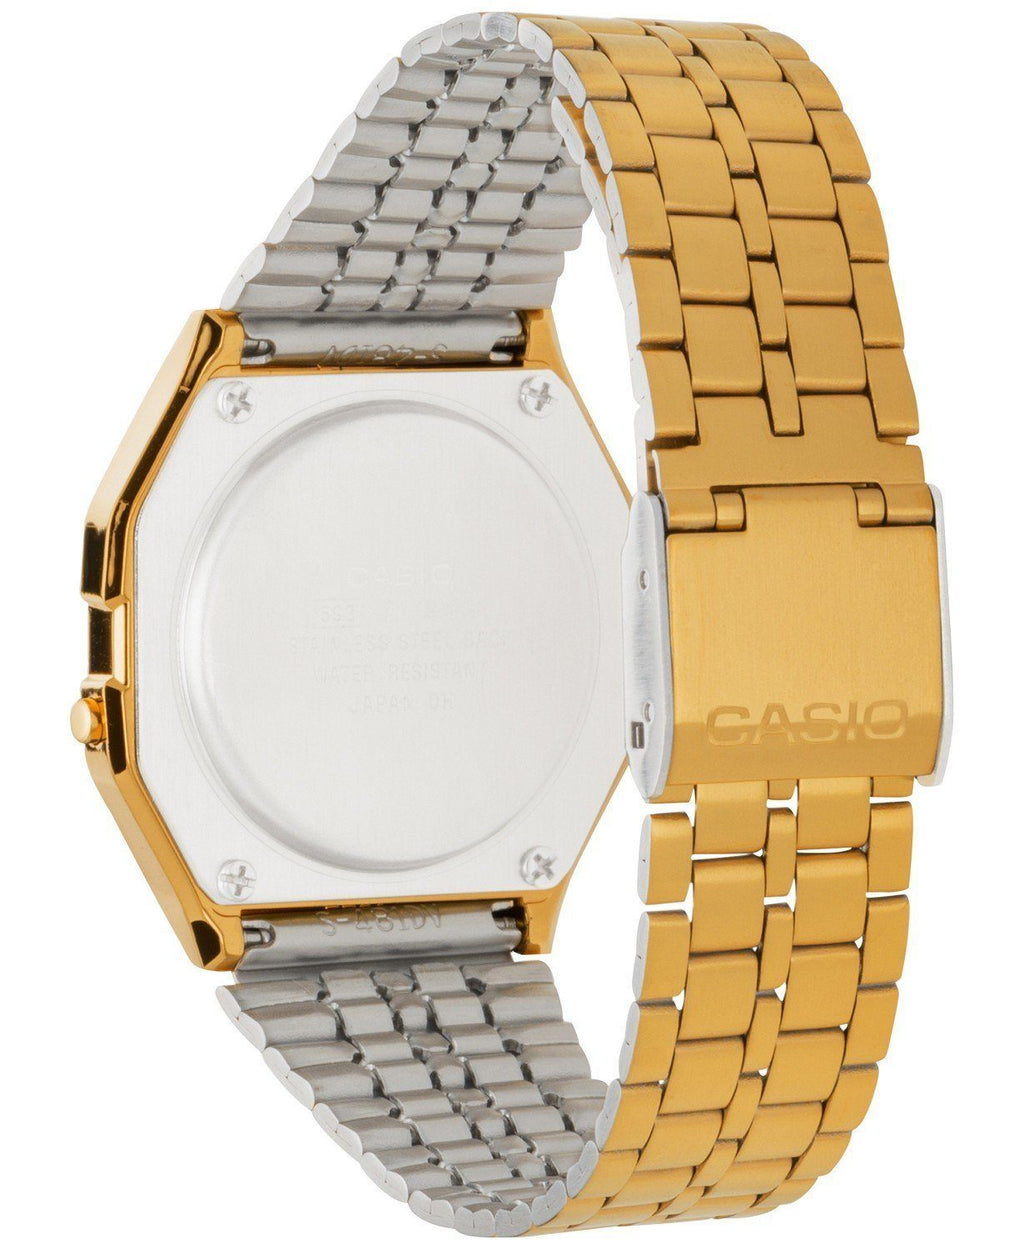 CASIO Vintage Digital Watch in Gold - CLOUT COLLECTION